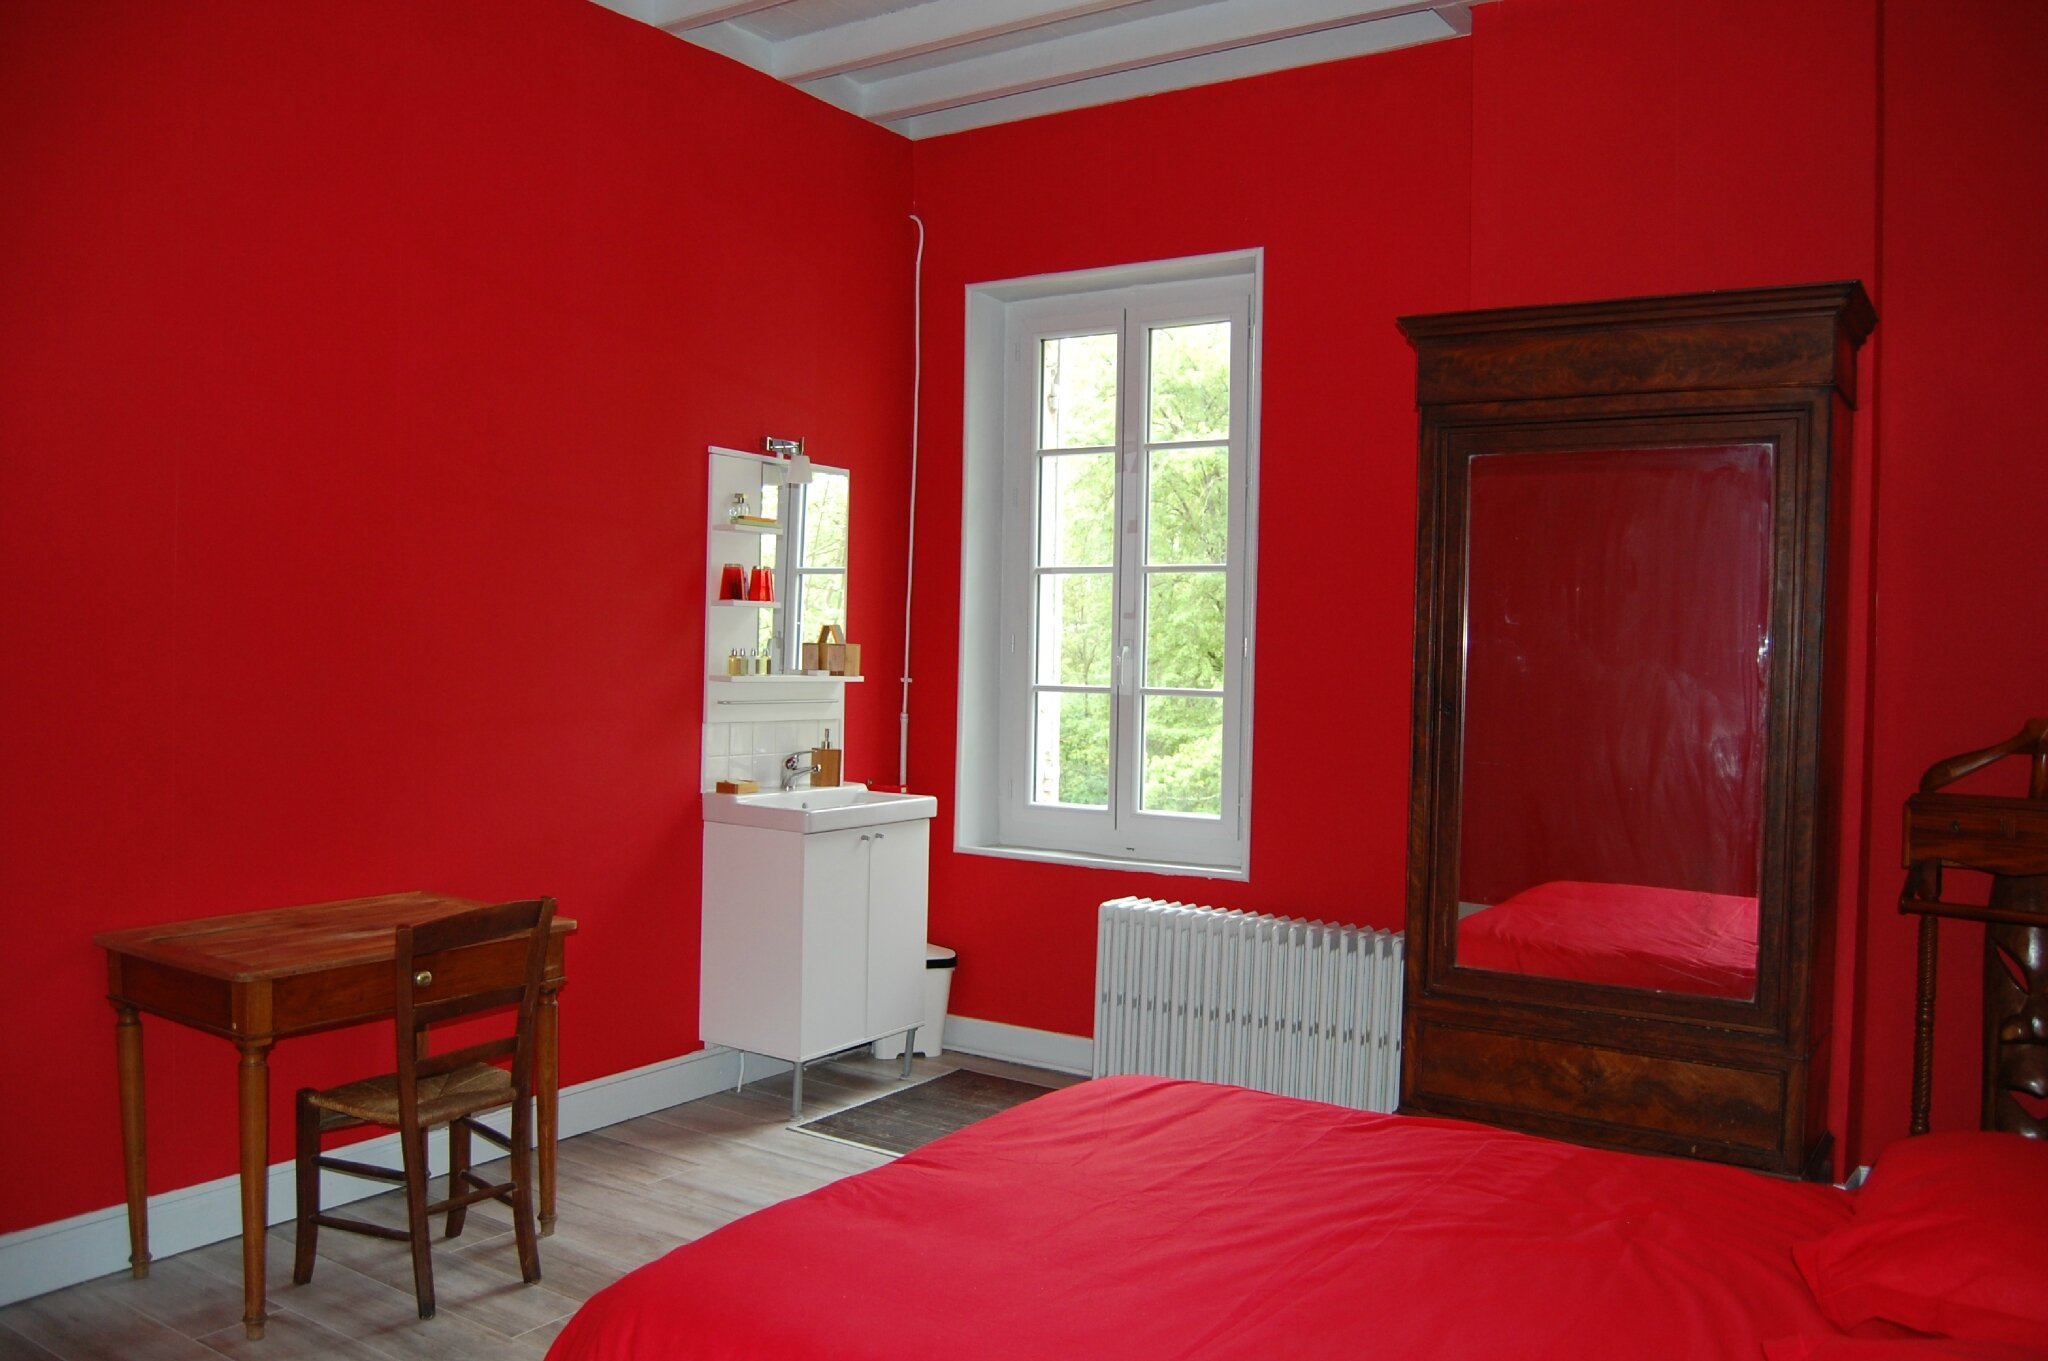 Chambre En Rouge Et Gris - Fashion Designs